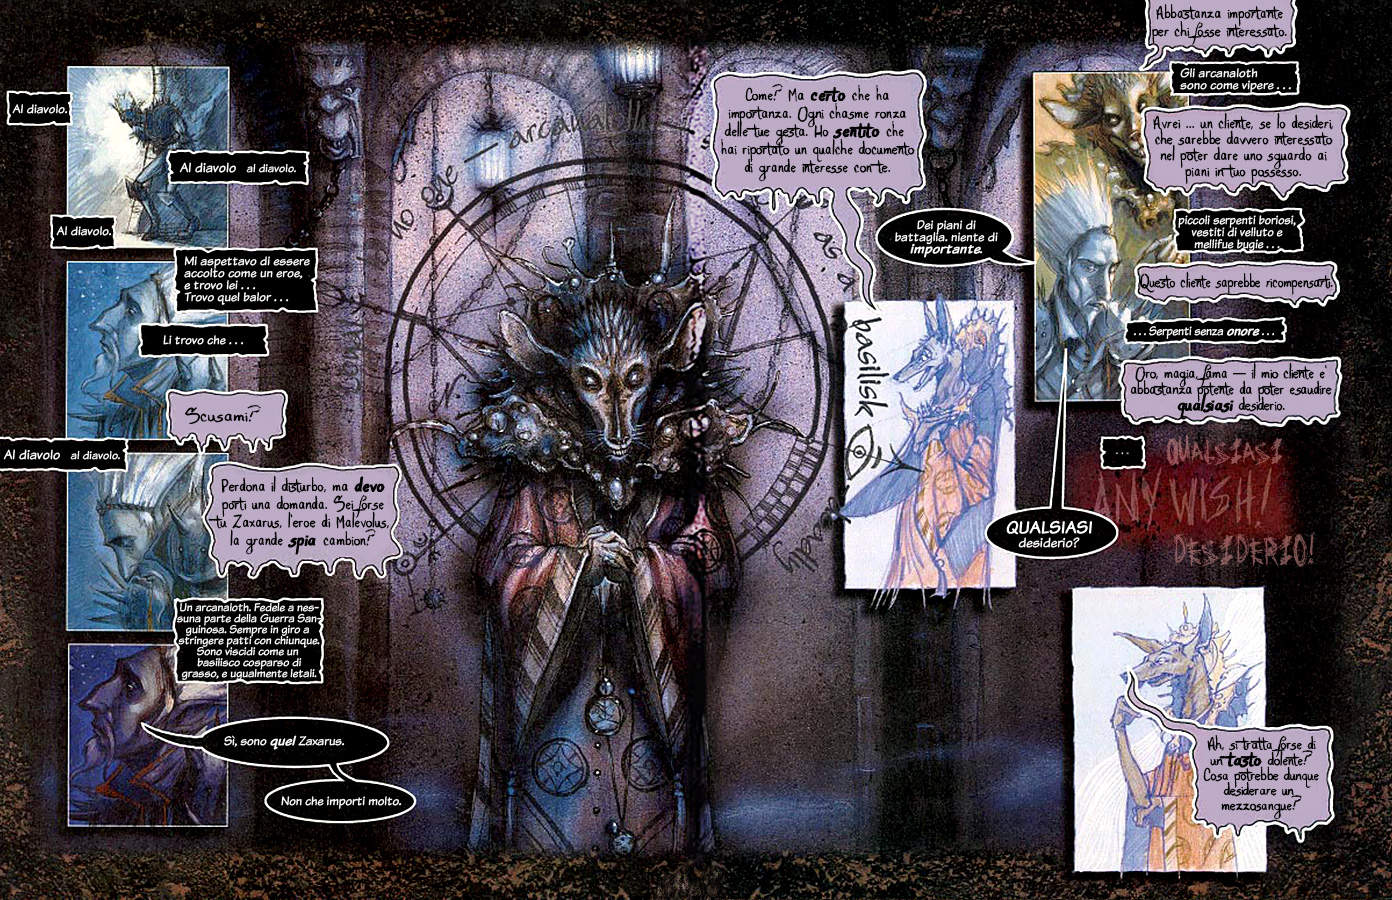 Planescape Hellbound graphic novel the bargain ita italiano by diterlizzi and ruppel, abyss cambion zaxarus arcanaloth